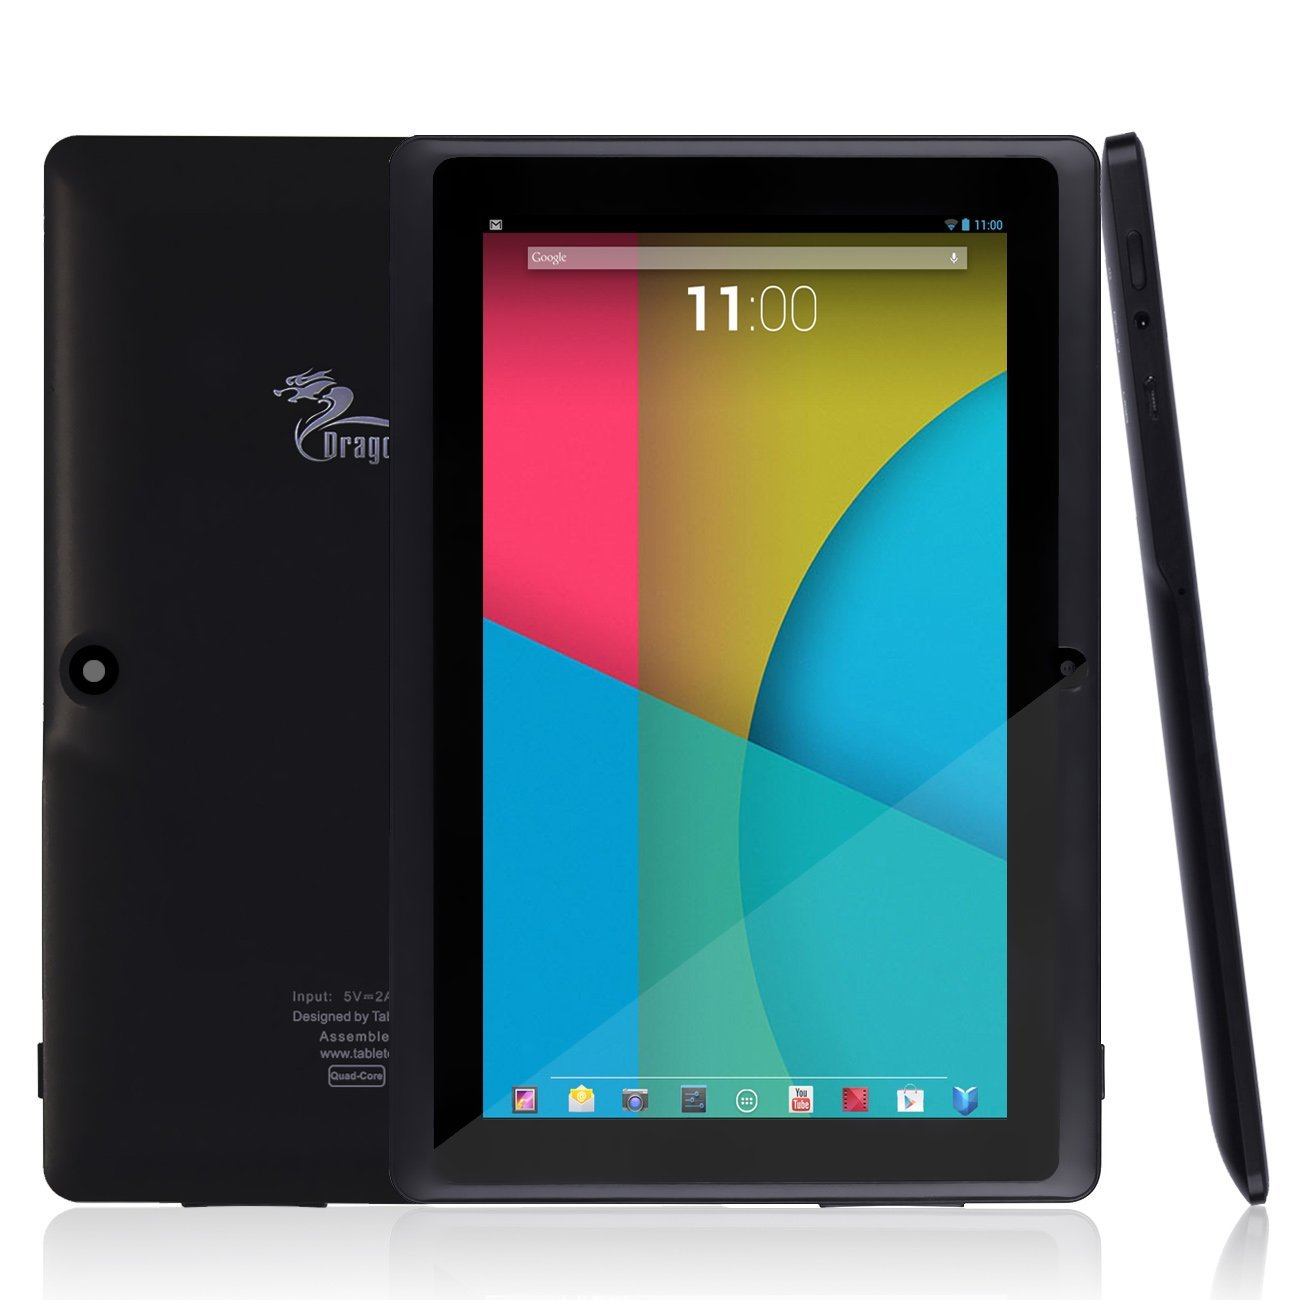 Dragon touch quad core tablet best tablets under 100 for Table th 100